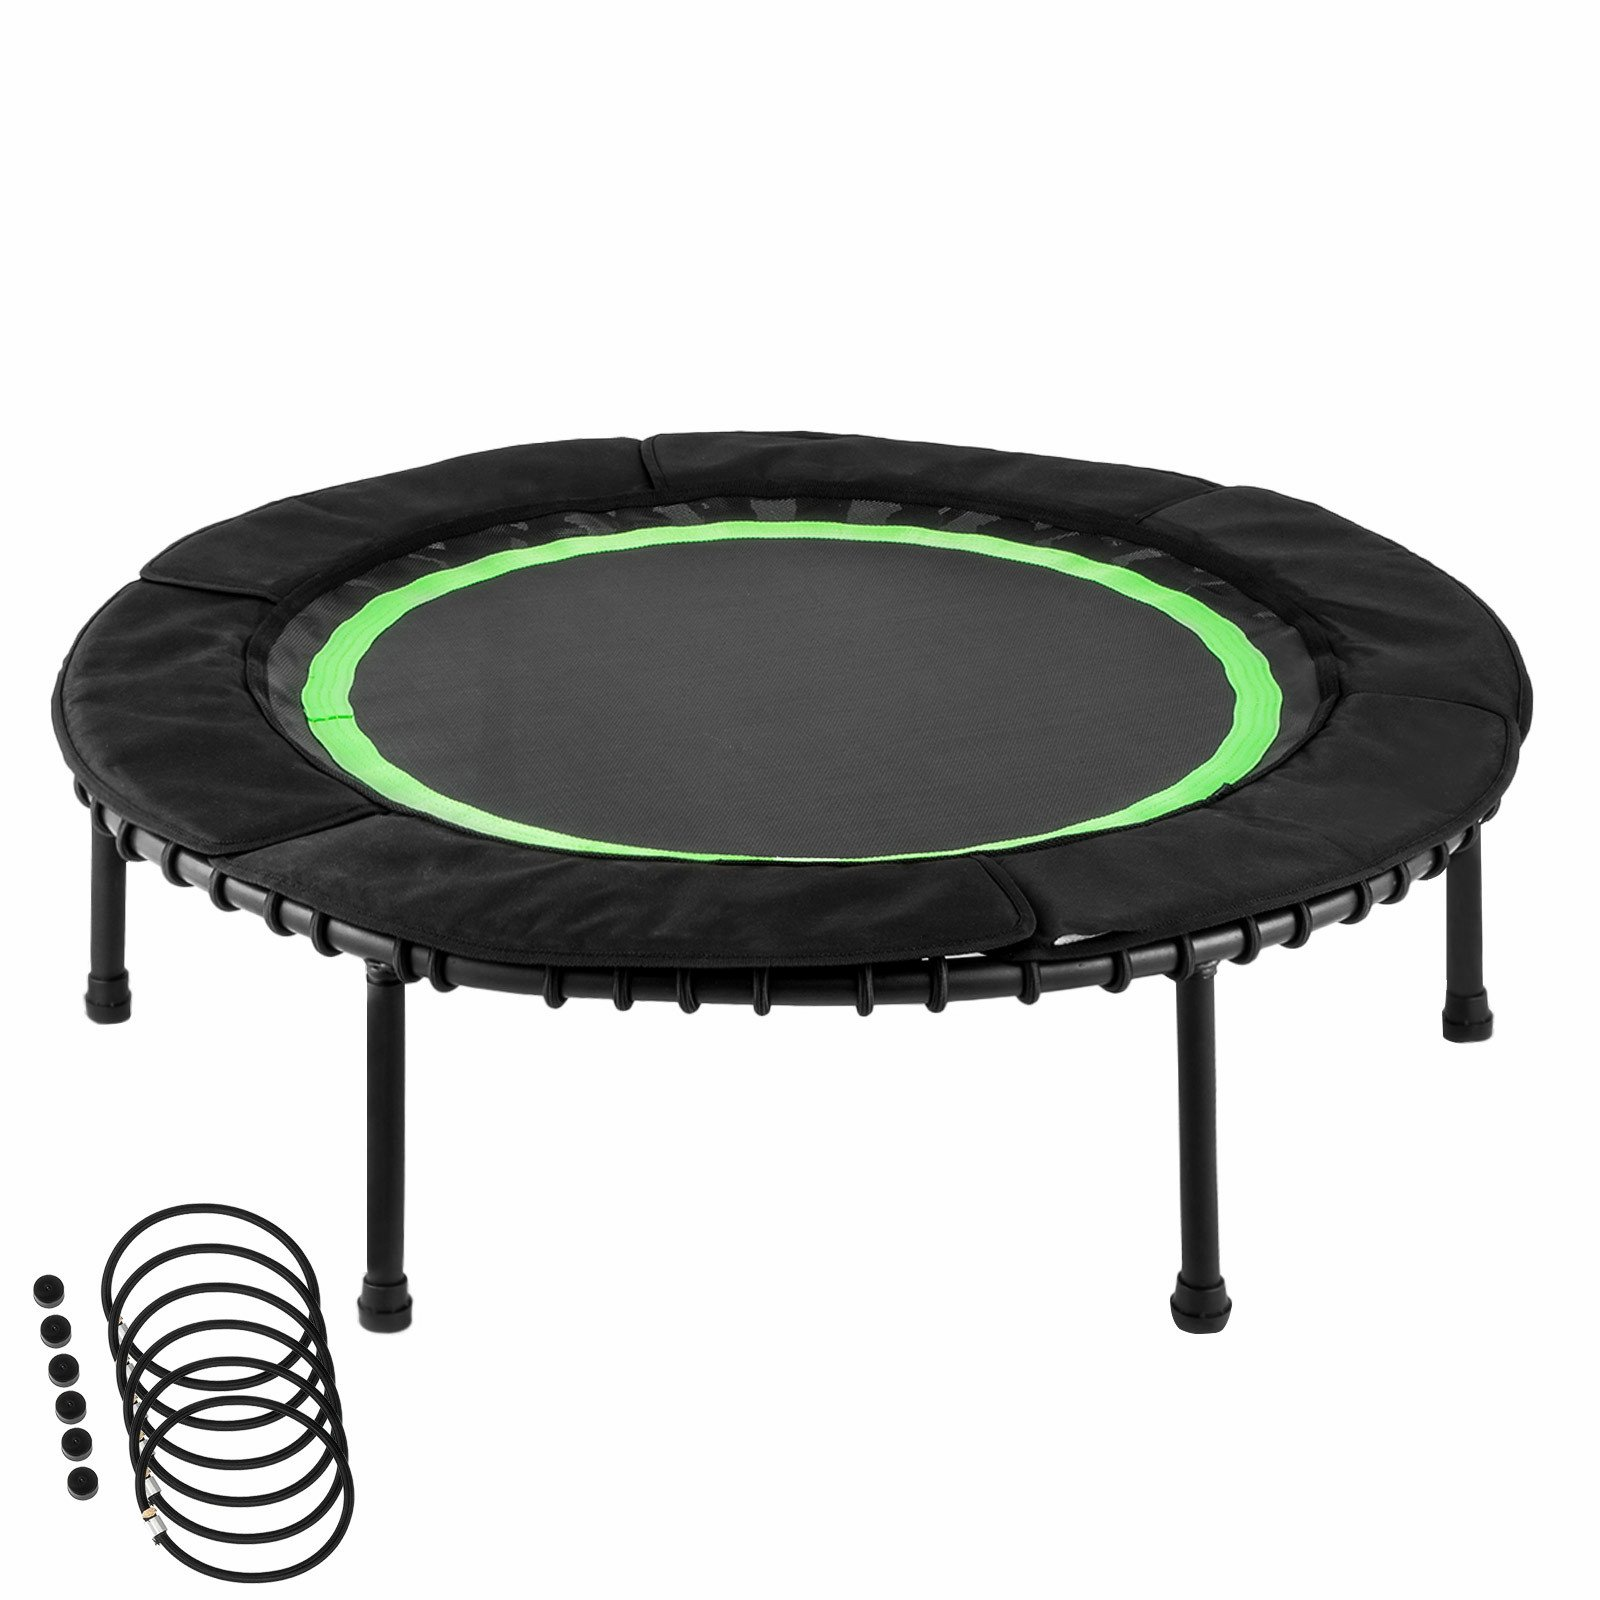 Popsport 40 Inch Mini Trampoline 330 lbs Fitness Trampoline in-HomeRebounder with Bungee Cover and Rubber Bungees for Home Cardio Exercise (40 Inch Mini Trampoline)